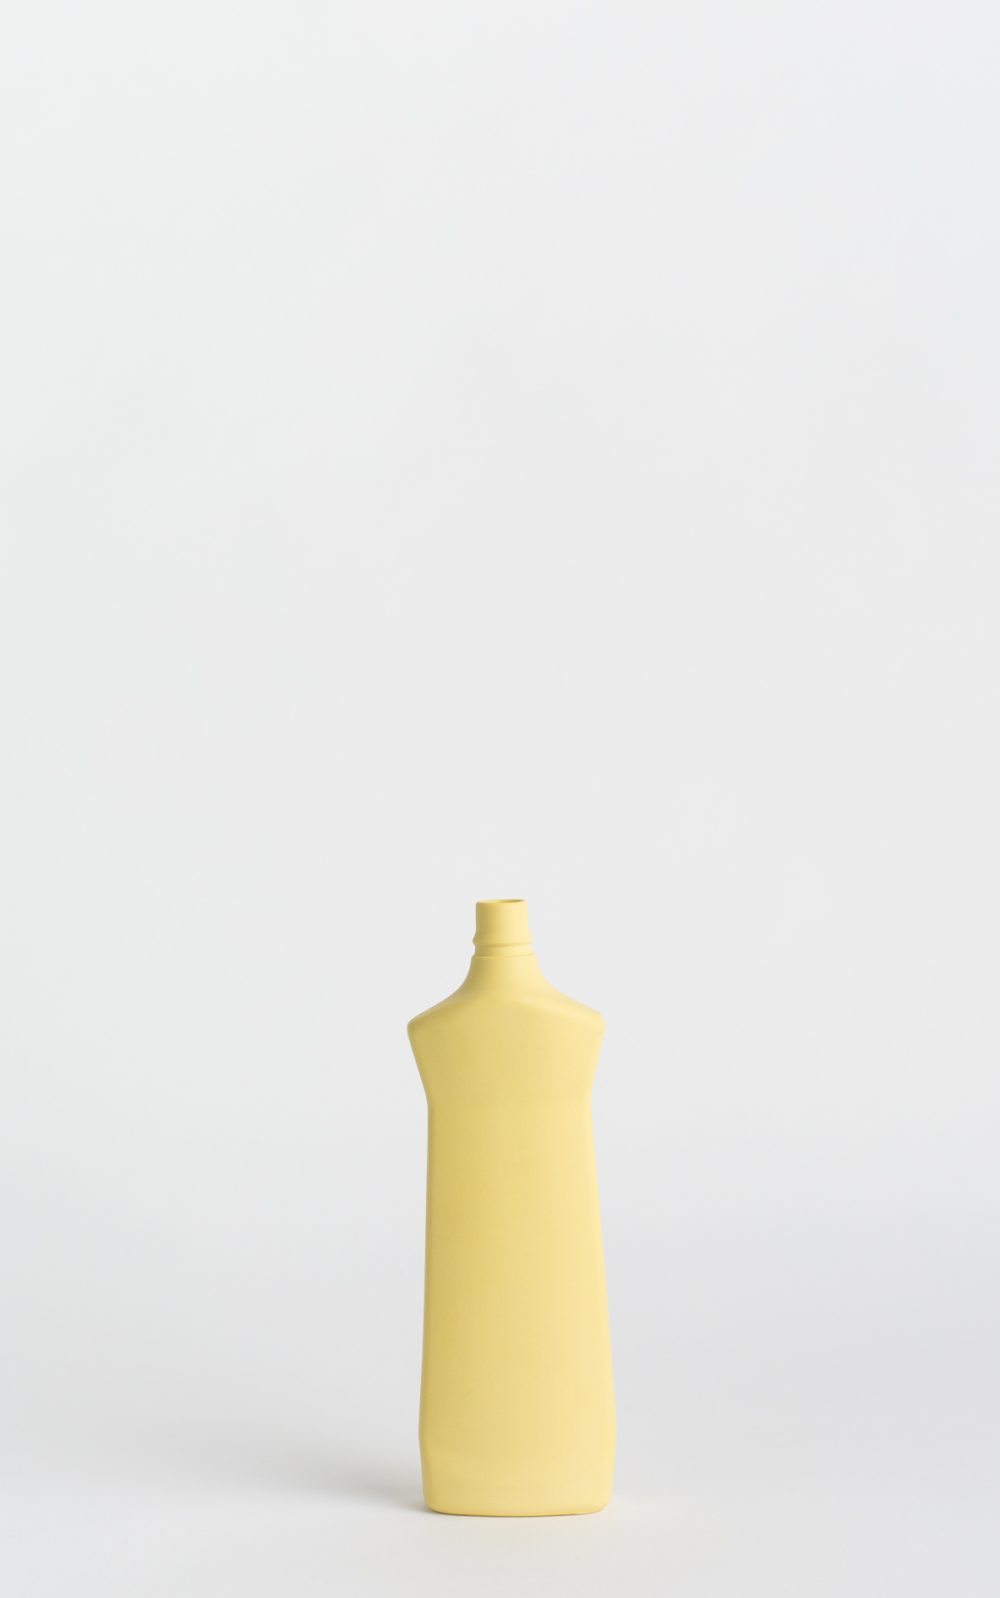 bottle vase #1 fresh yellow